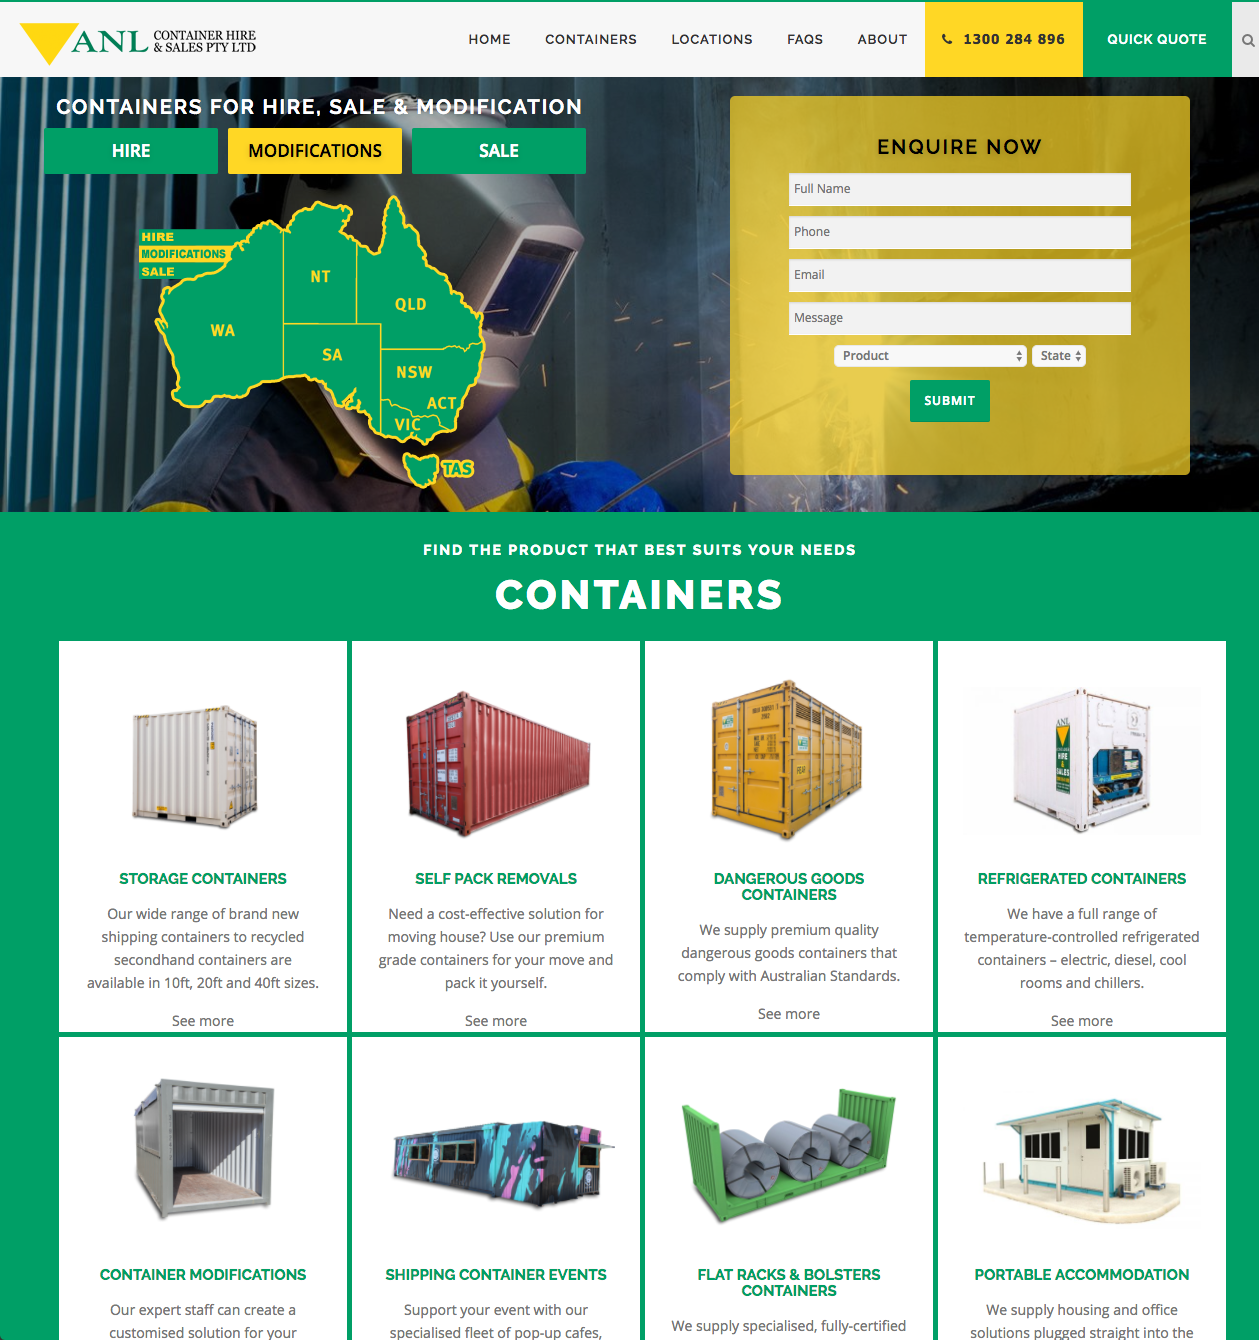 SEO Website Design & Development For ANL Containers